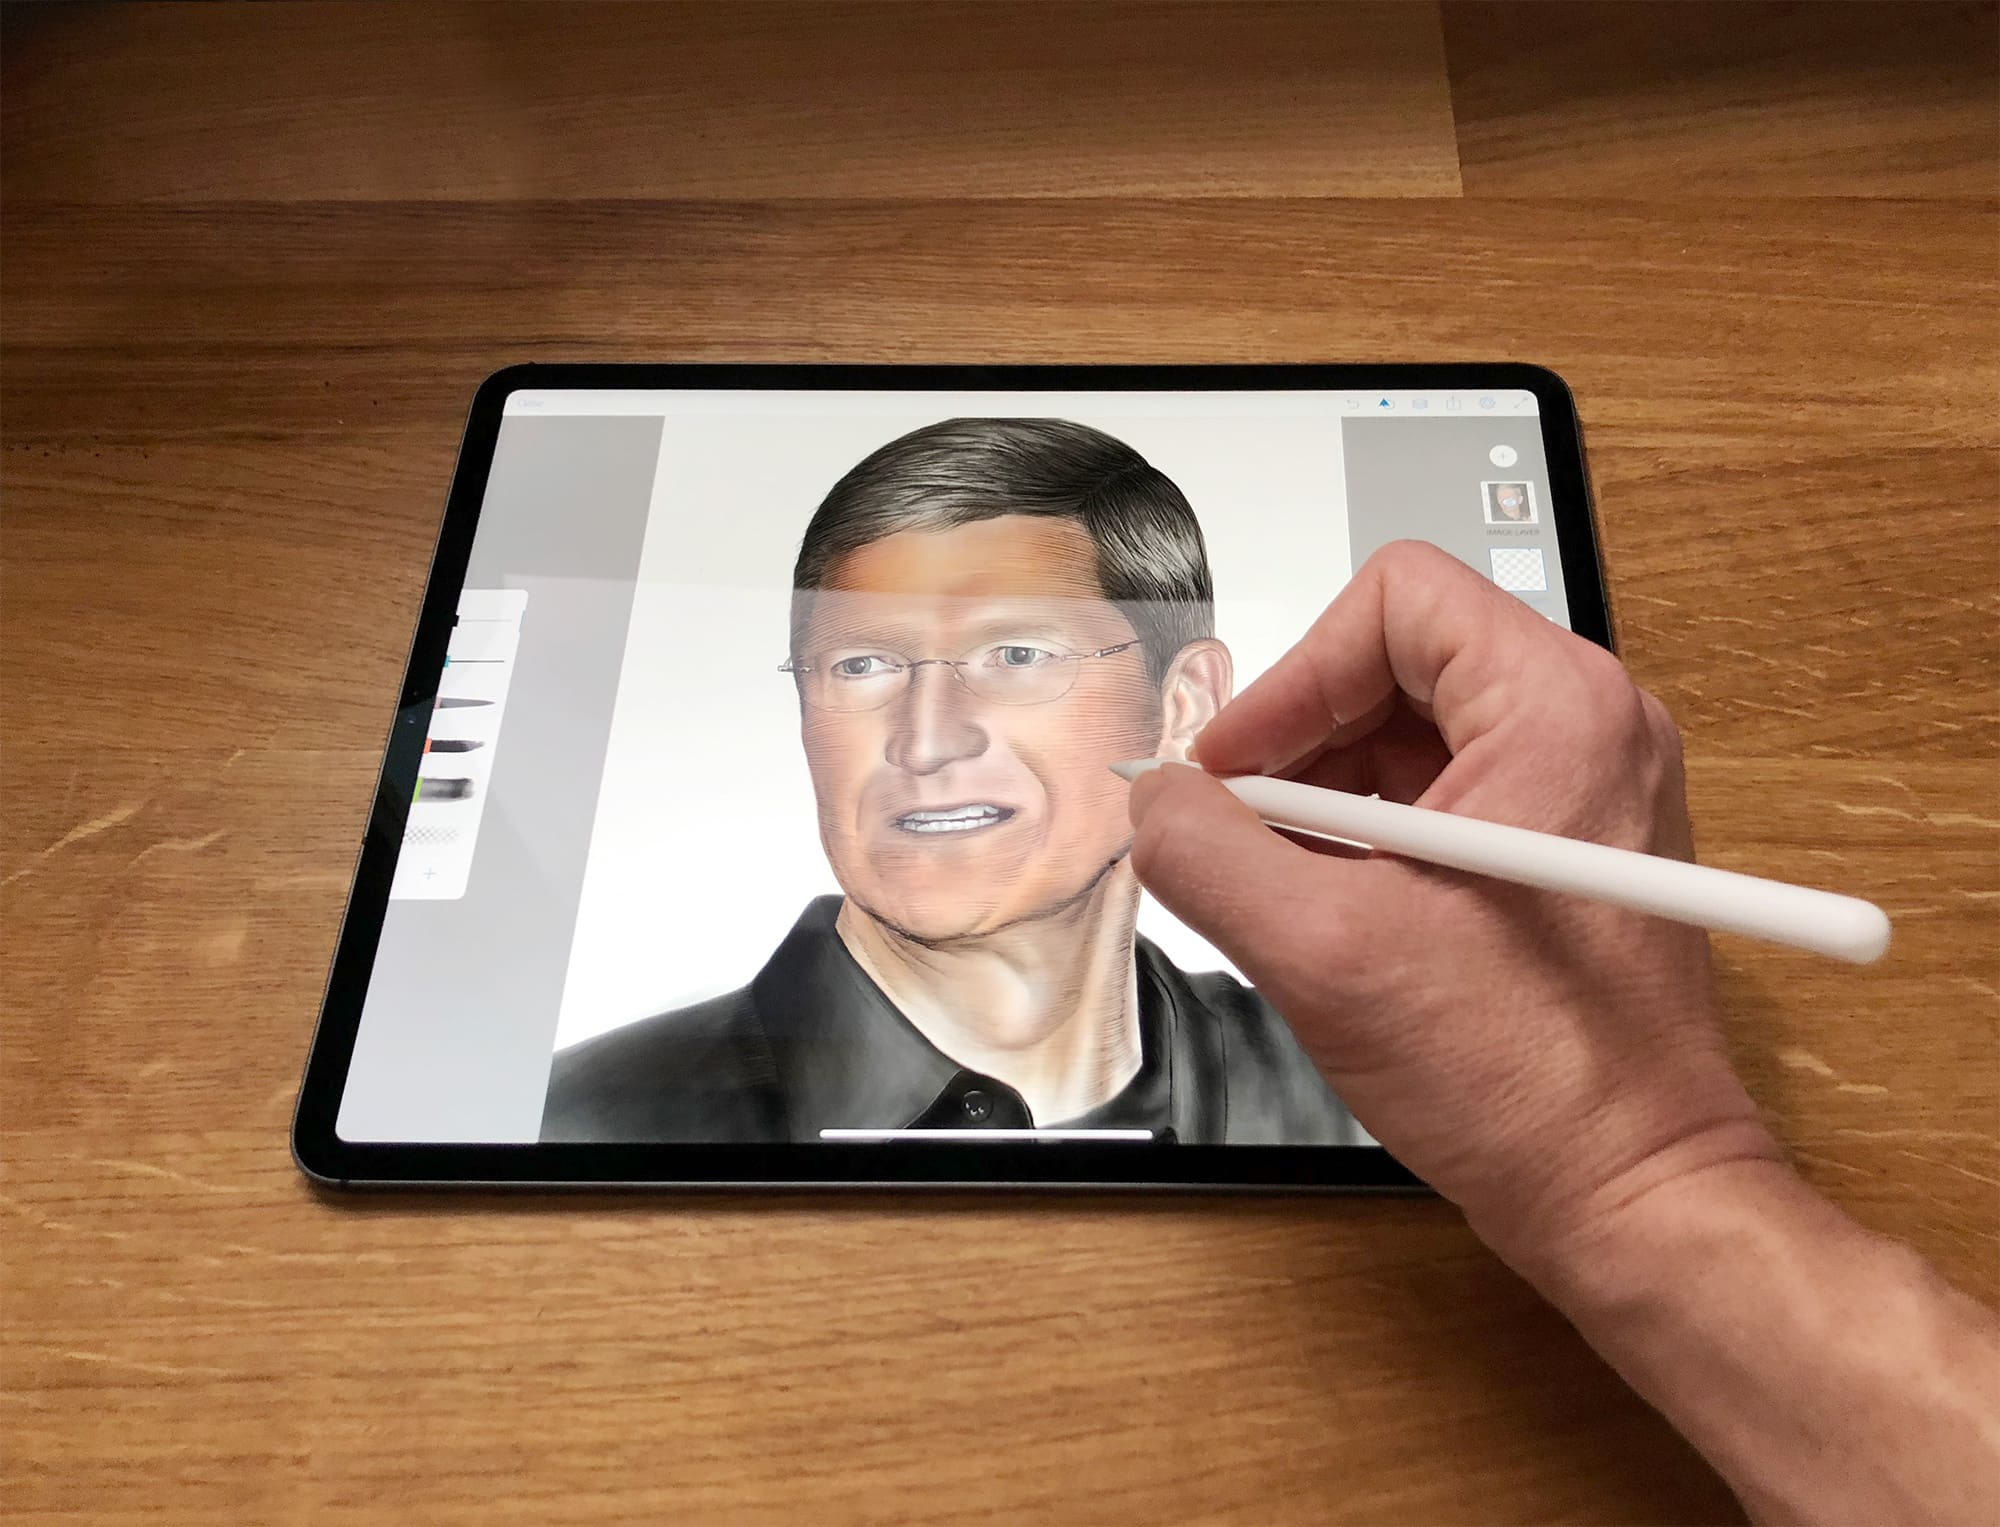 Are you drawn to draw with your new Apple Pencil 2?